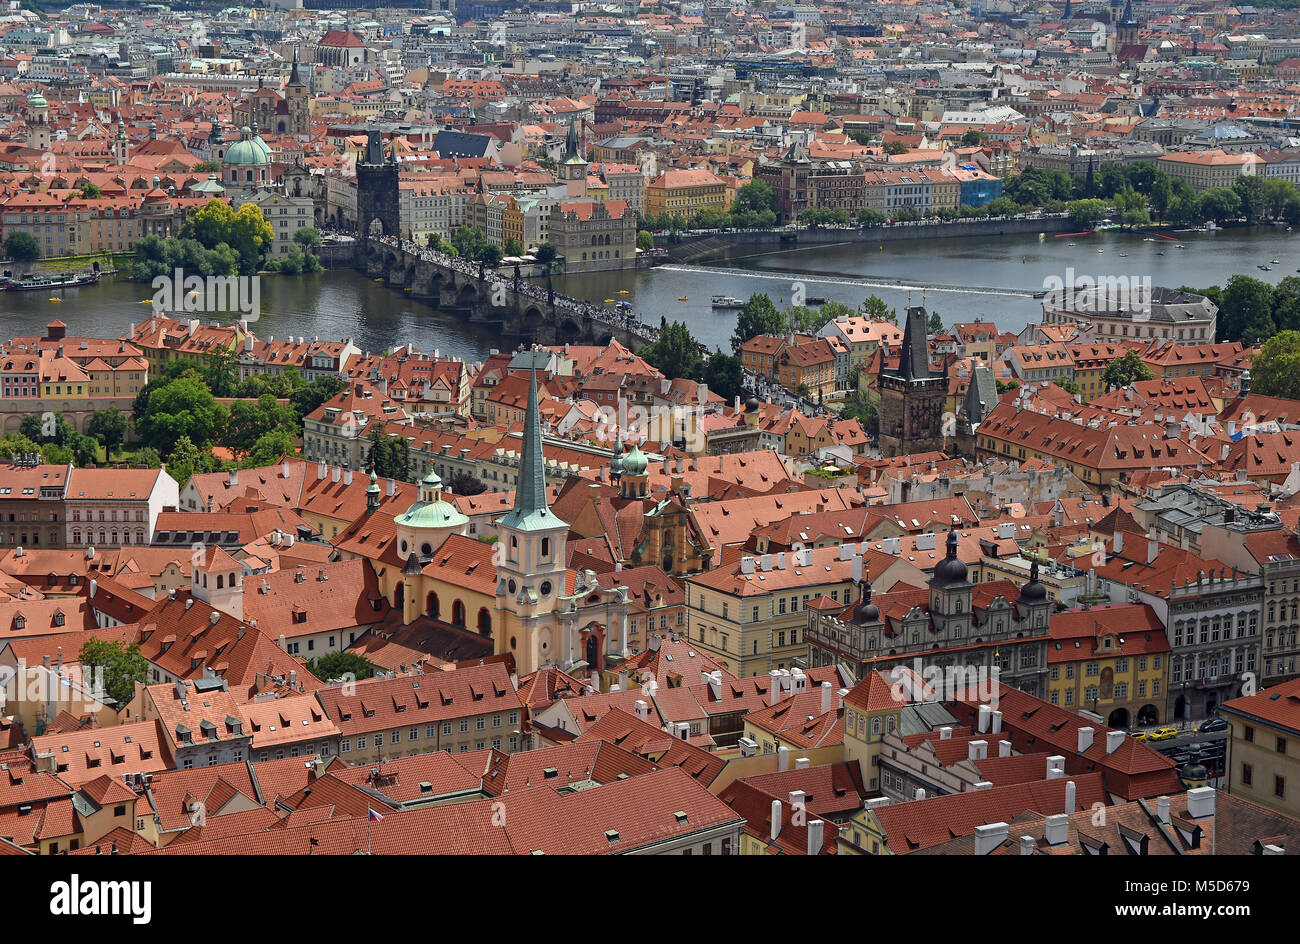 View from St. Vitus Cathedral to the Old Town with Vltava, Prague, Bohemia, Czech Republic - Stock Image